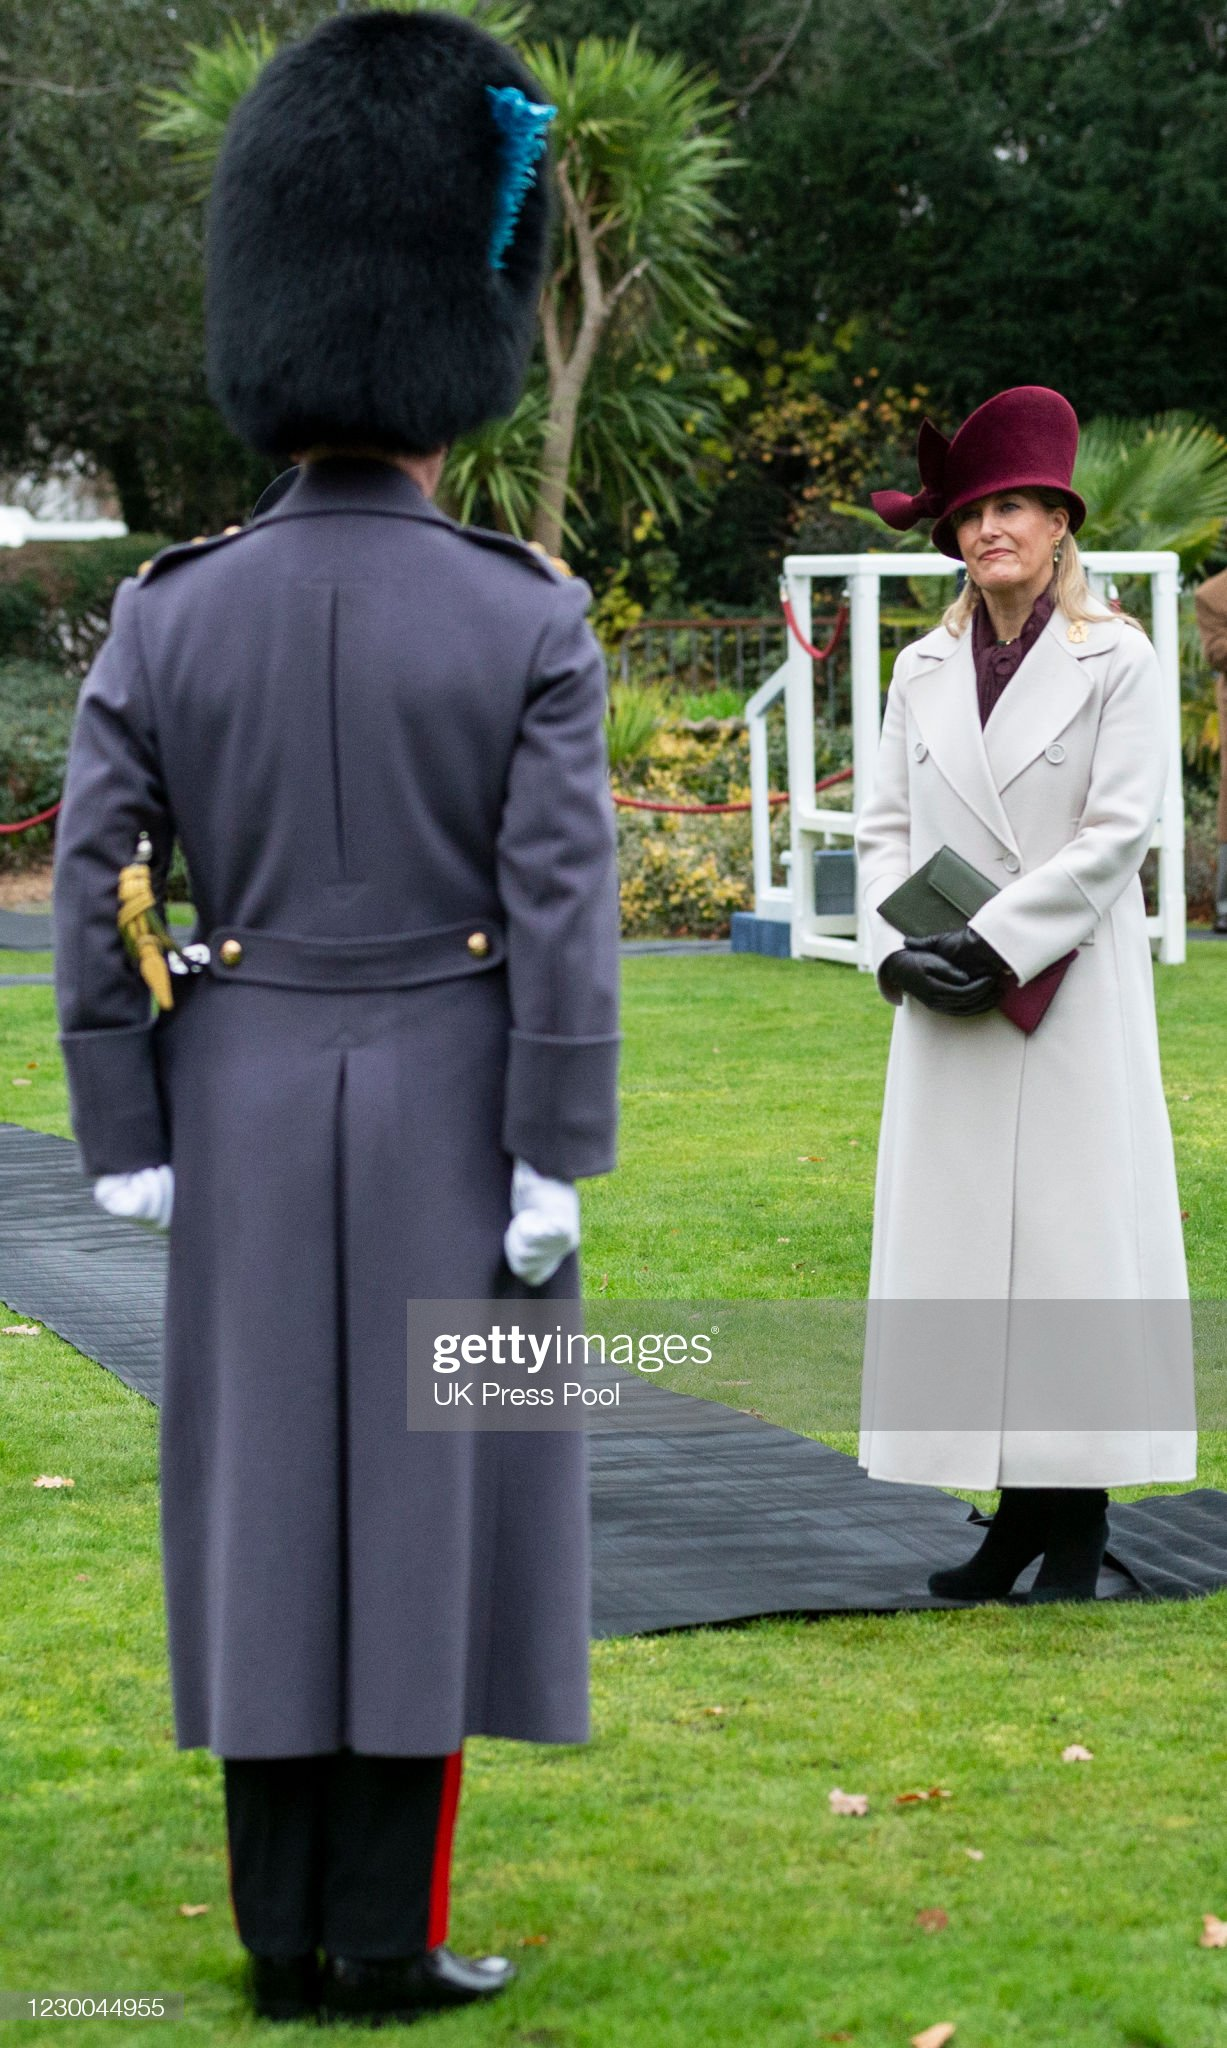 https://media.gettyimages.com/photos/sophie-countess-of-wessex-visits-the-corps-of-army-music-for-a-and-picture-id1230044955?s=2048x2048